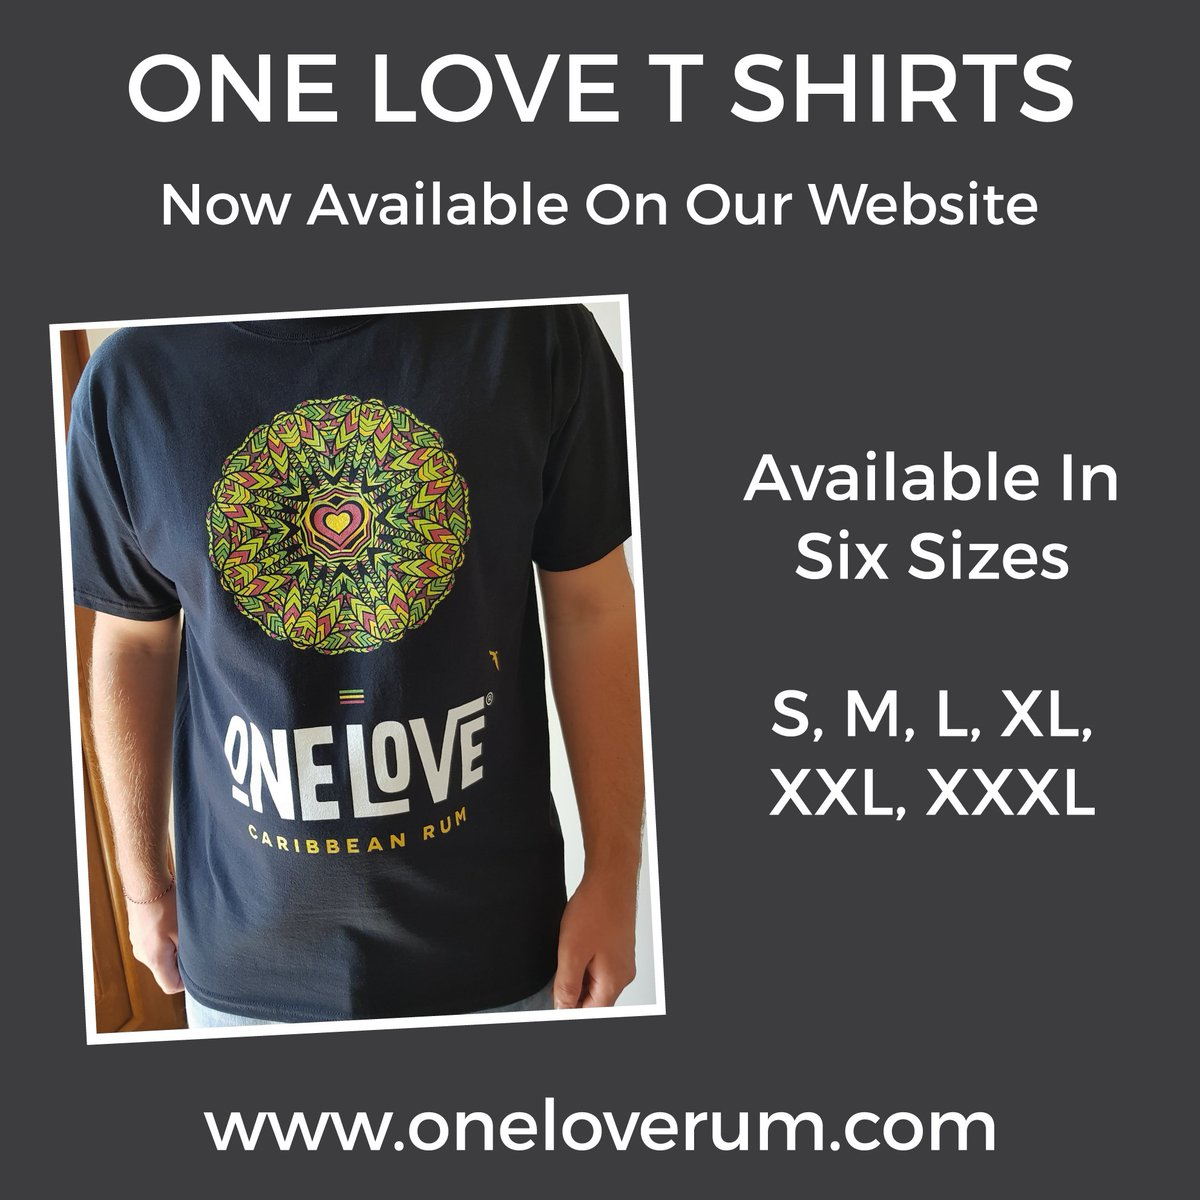 Xxxl Poster One Love Rum On Twitter